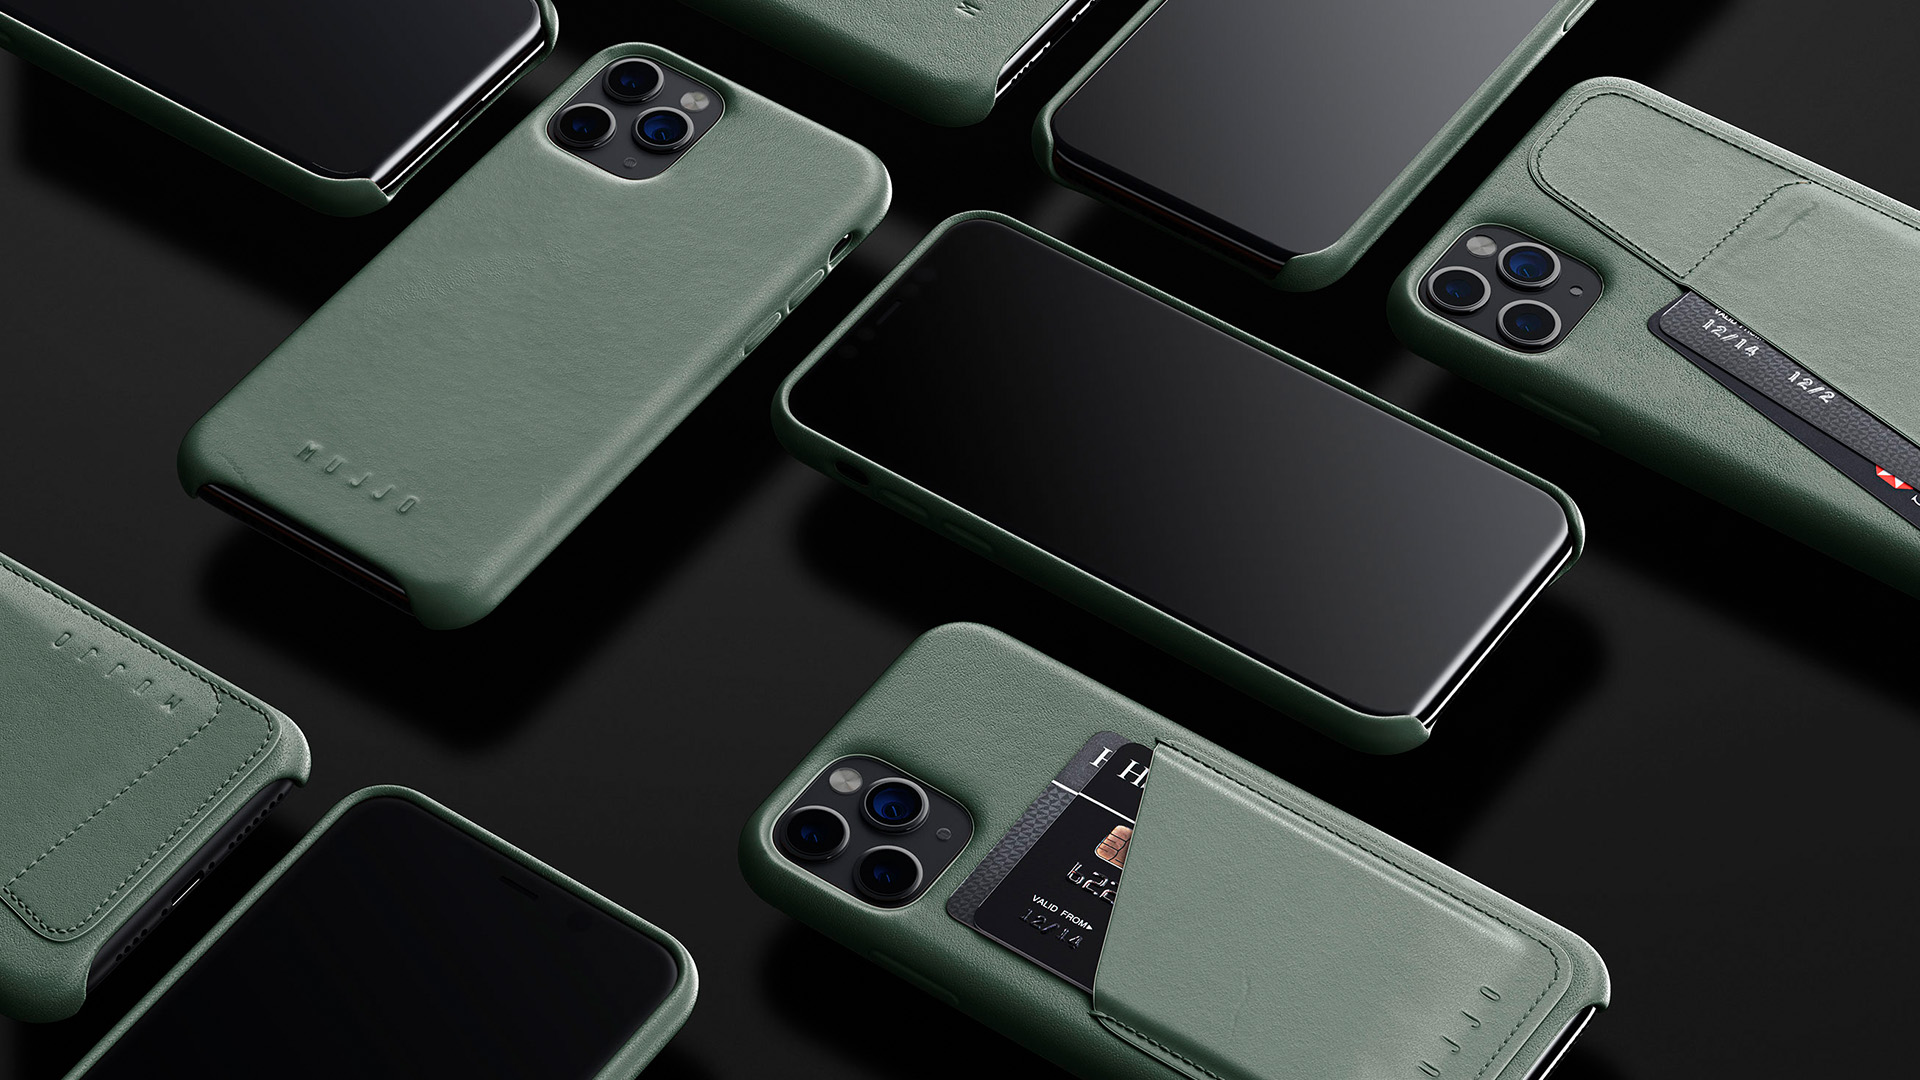 Mujjo Introduces New Slate Green Leather Cases To Match Midnight Green Iphone 11 Pro Models 9to5mac